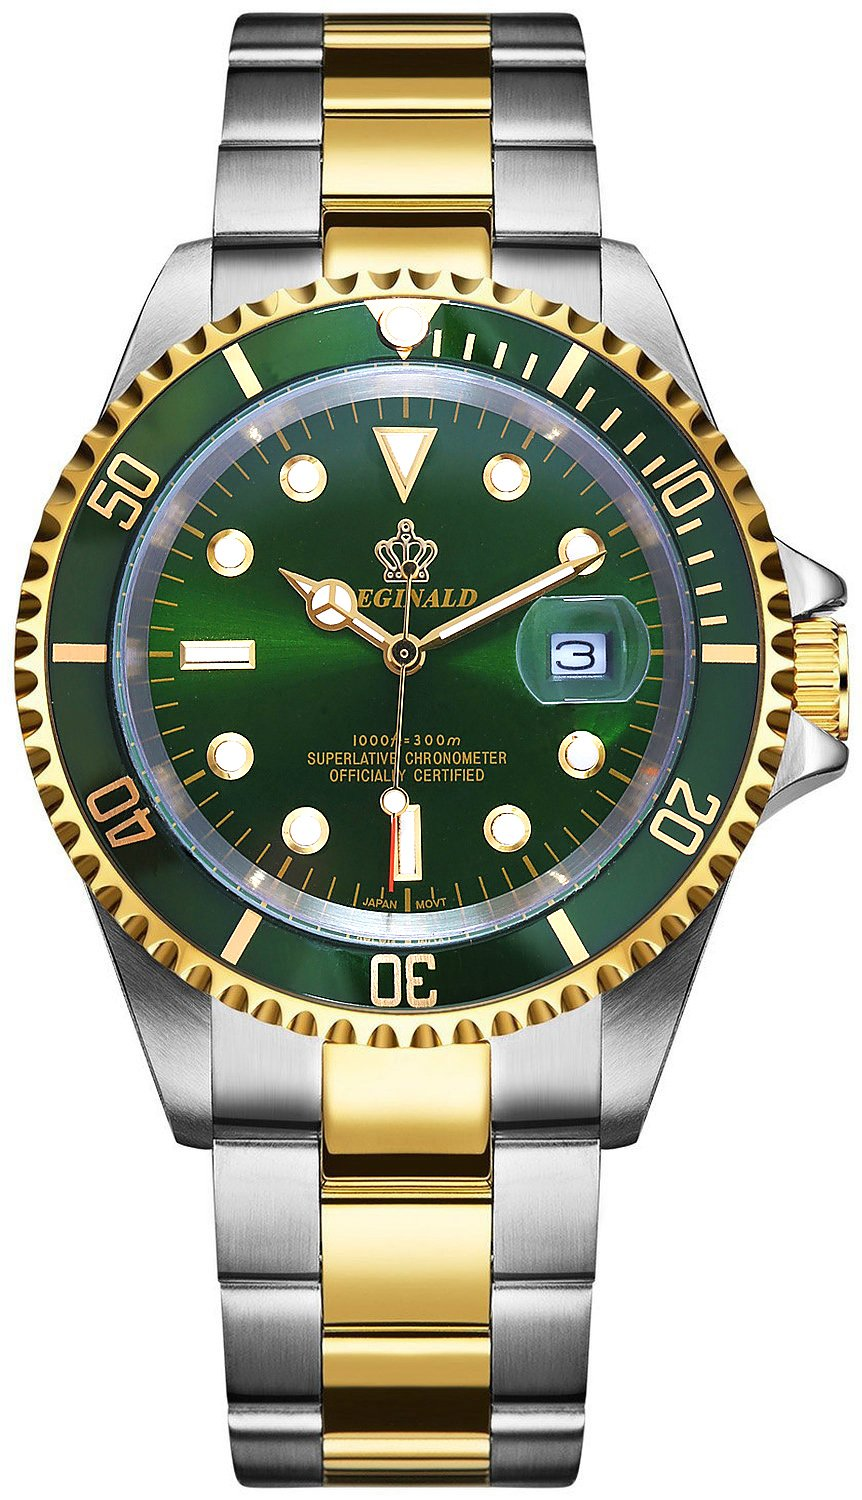 PASOY Mens Watch Green Luminous Sapphire Glass Stainless Steel Quartz Rotatable Bezel Waterproof Watches